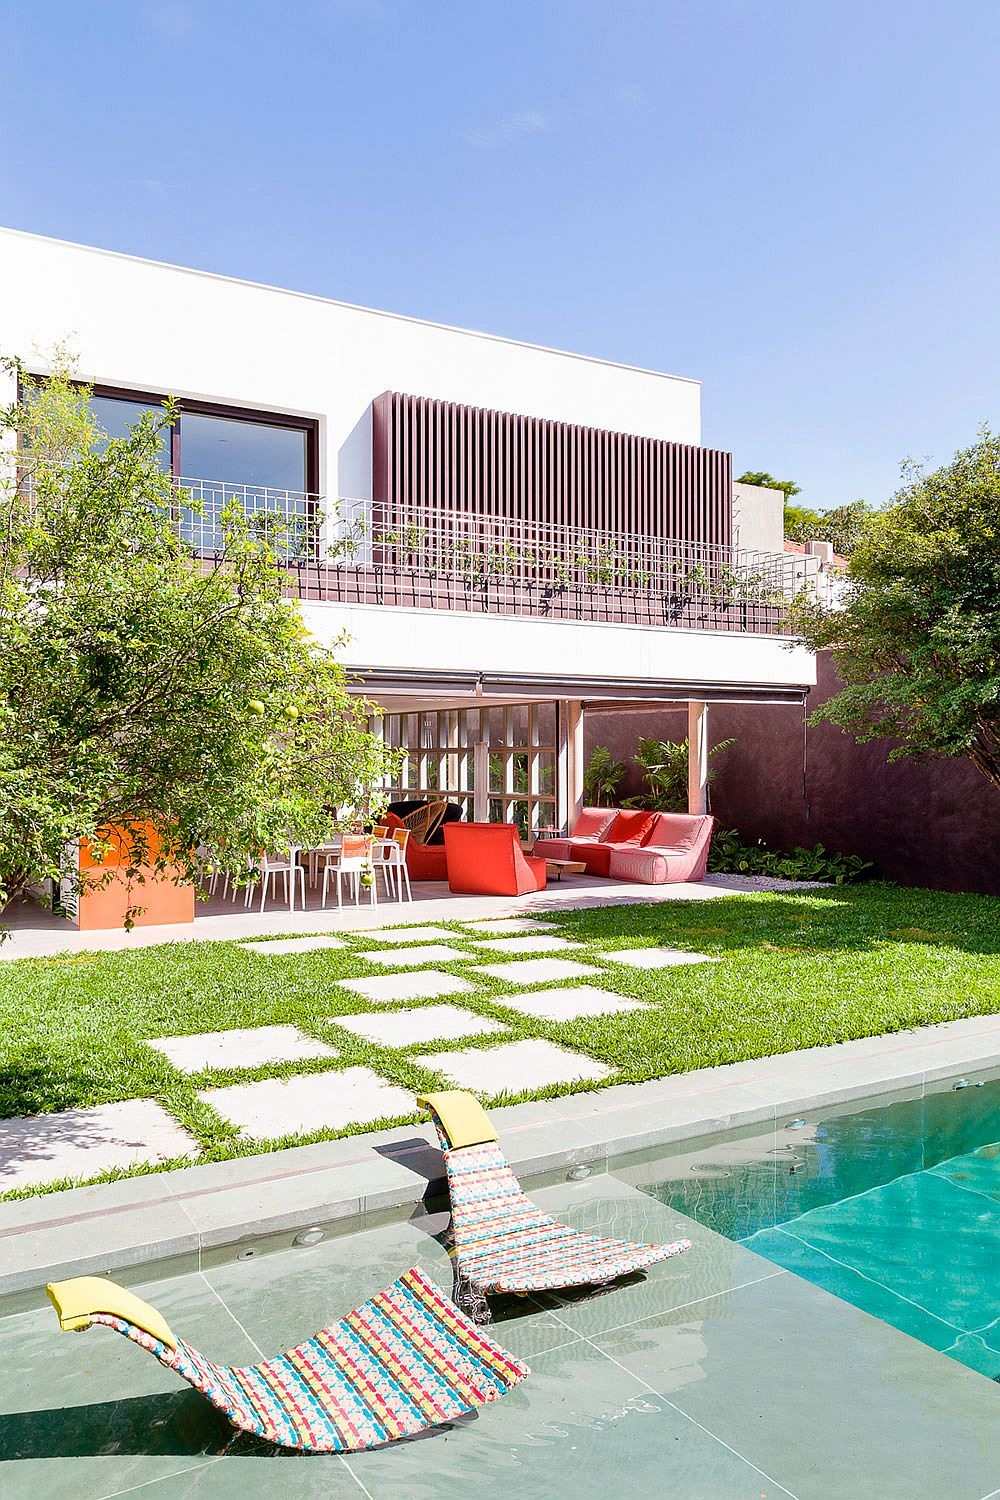 AA House in São Paulo Brazil A World of Green: Cheerful São Paulo Residence with Vibrant Pops of Color